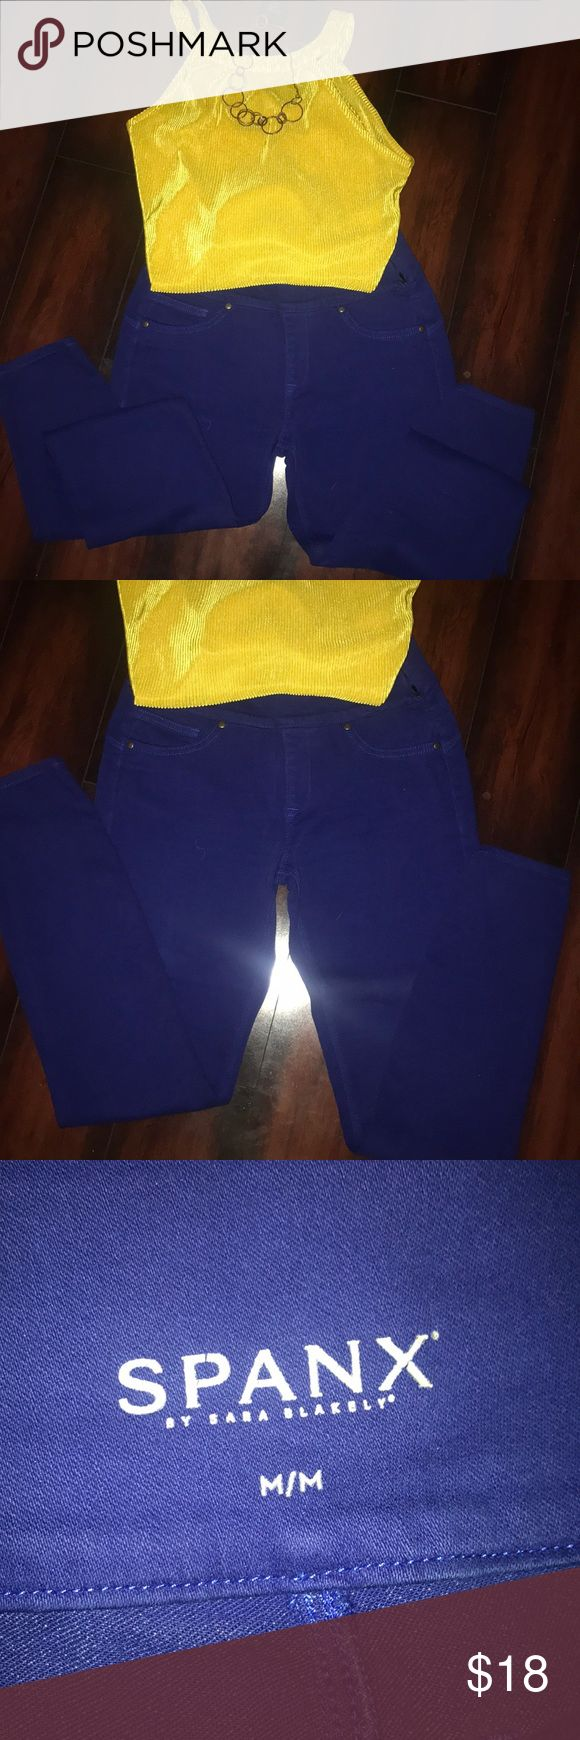 Blue Spanx pants w/ necklace and earrings Spanx size medium skinny pants. Bronze necklace with multiple rings and matching earrings. Looks great with various colors. Yellow or white shirt will help accent the necklace. SPANX Pants Skinny